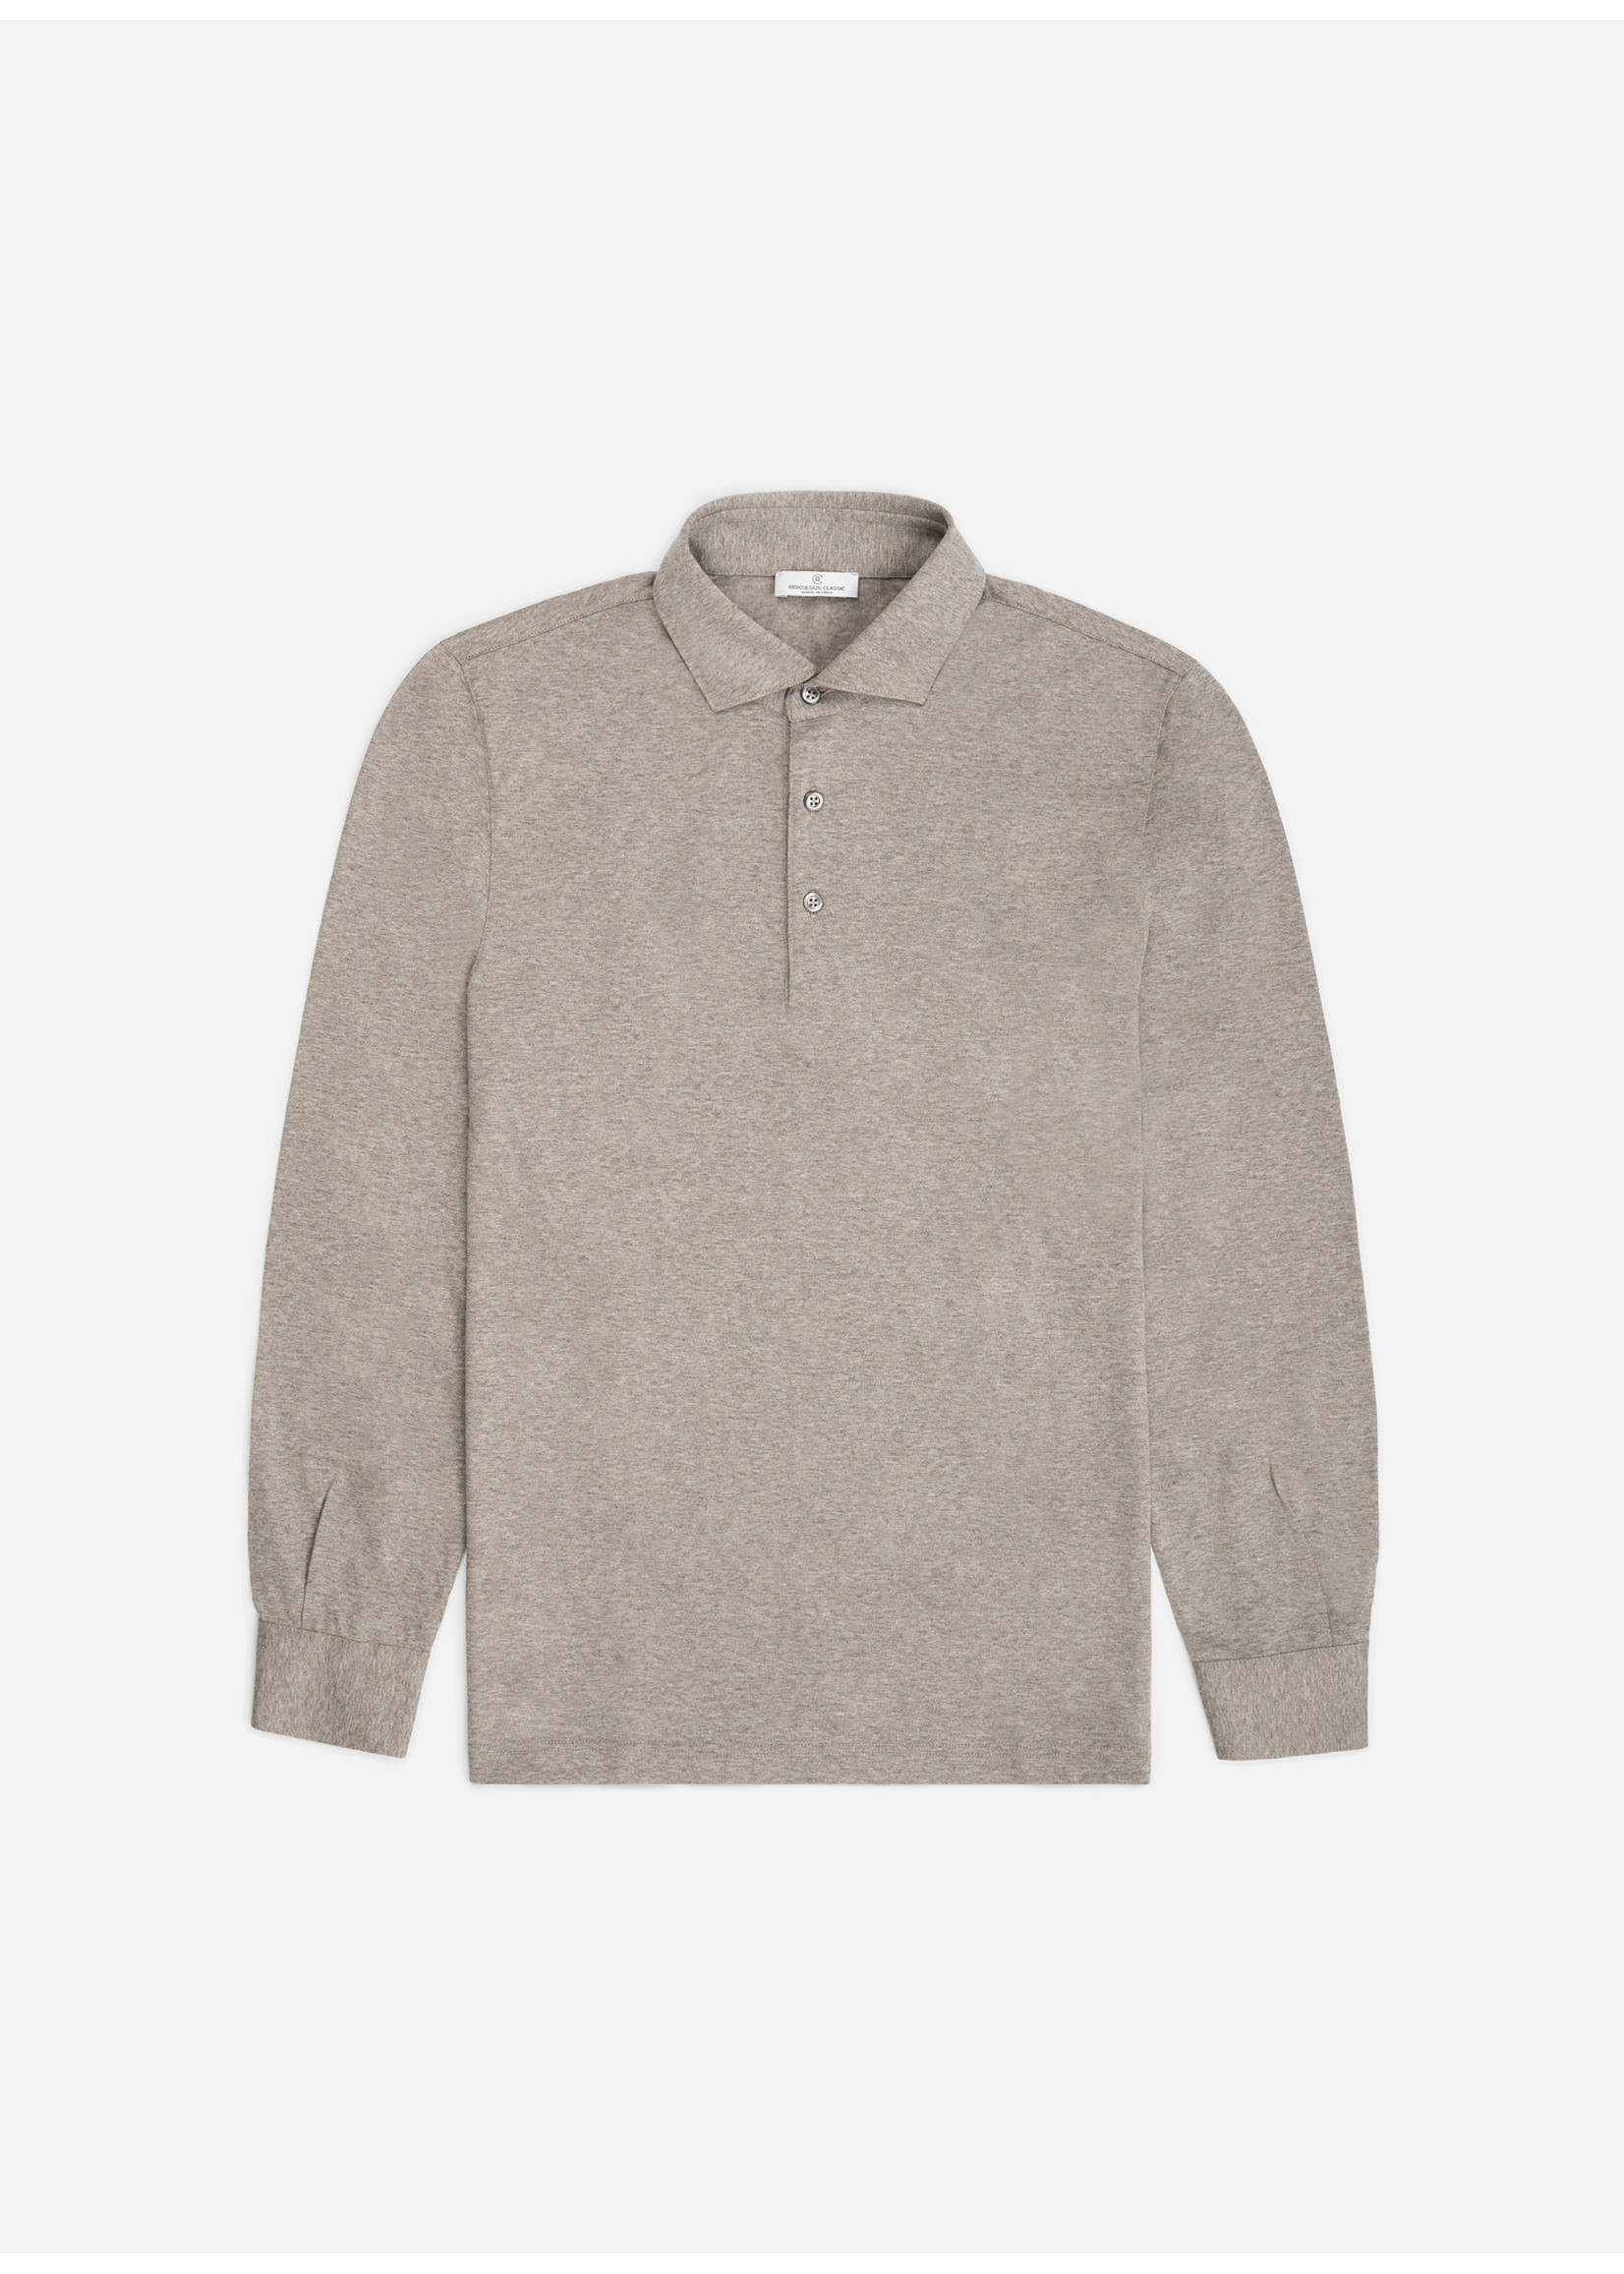 Ridiculous Classic Shirt Polo Long Sleeve Grey Taupe